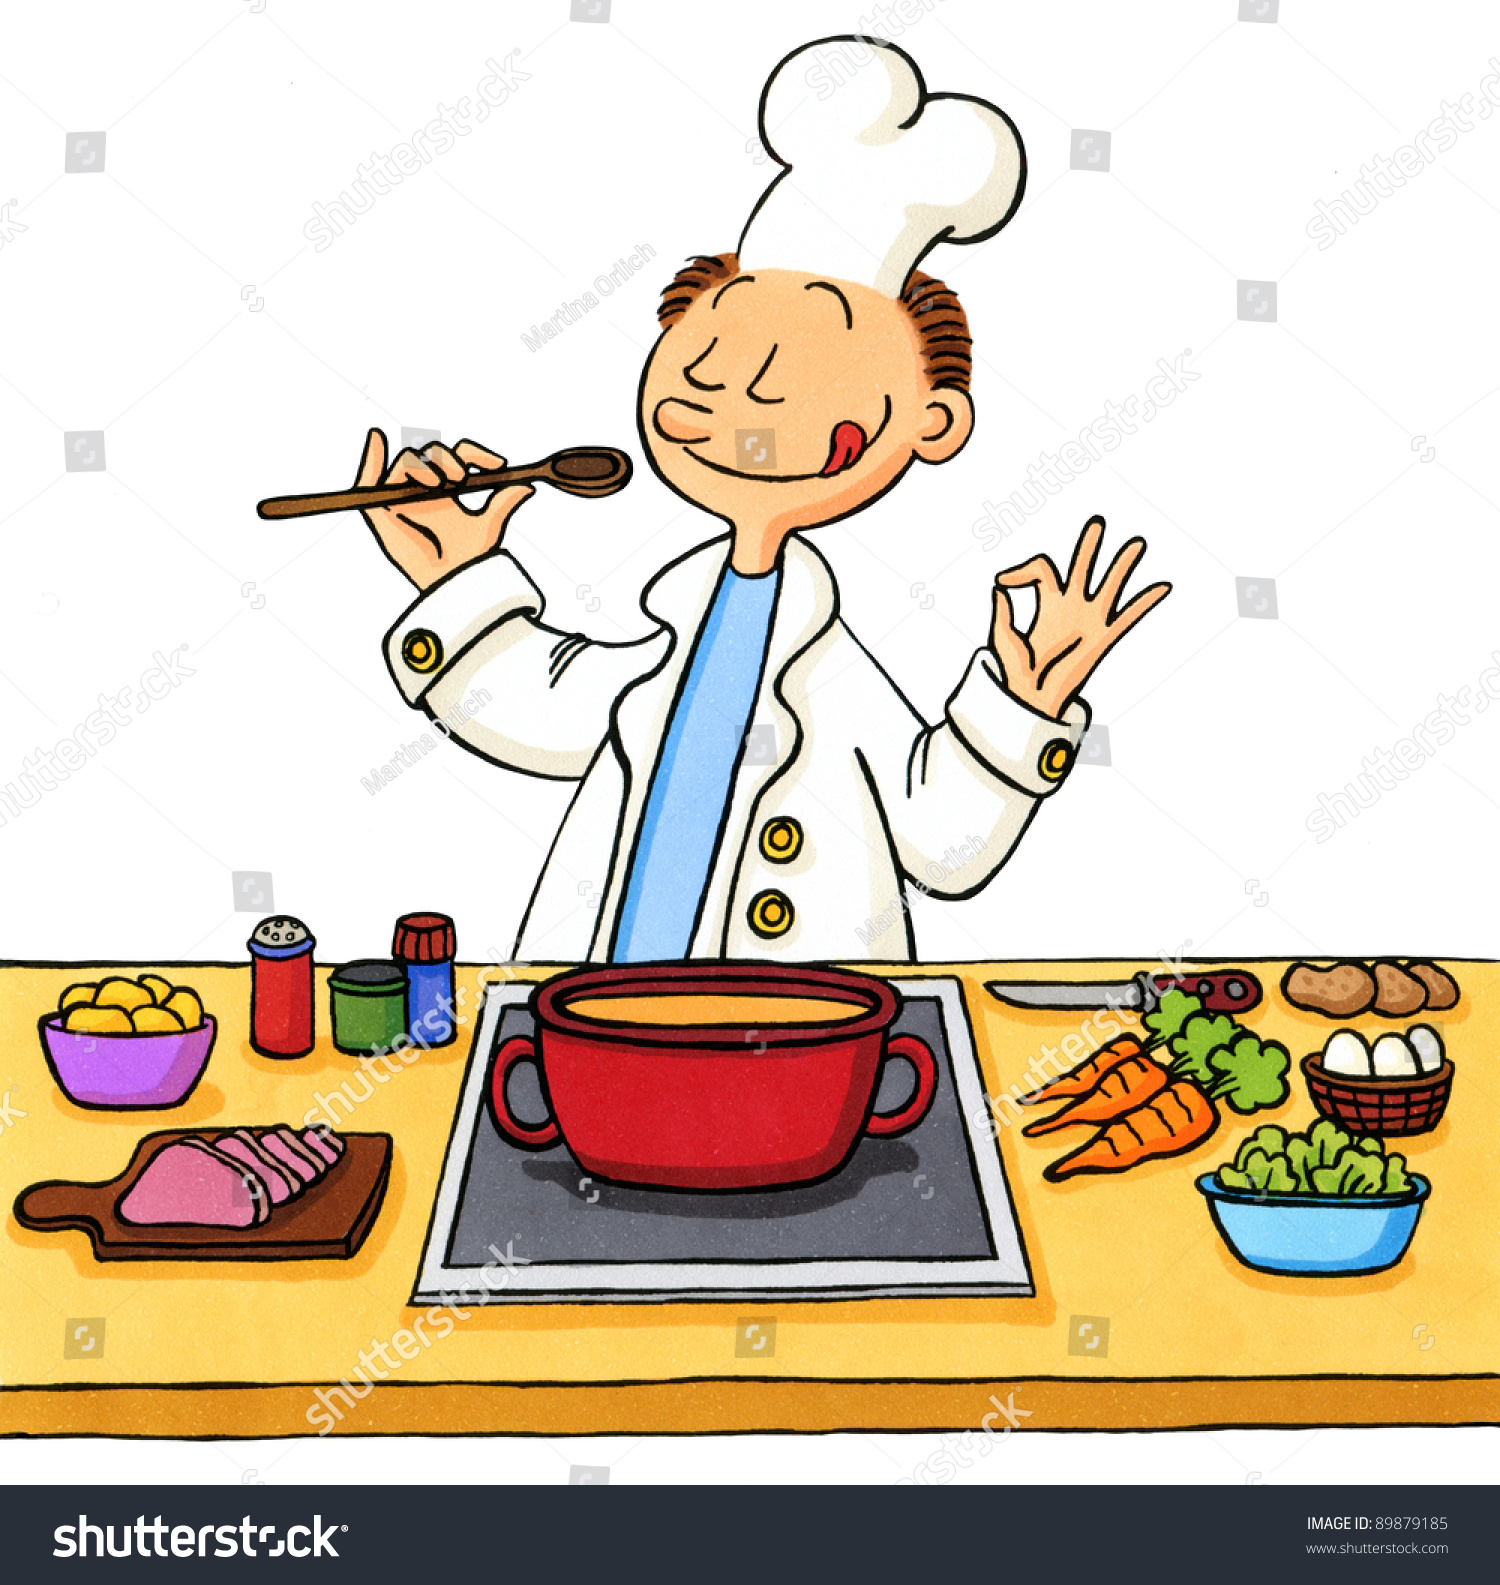 Selection of cartoons on cooking kitchens food and eating - Cartoon Of A Cook